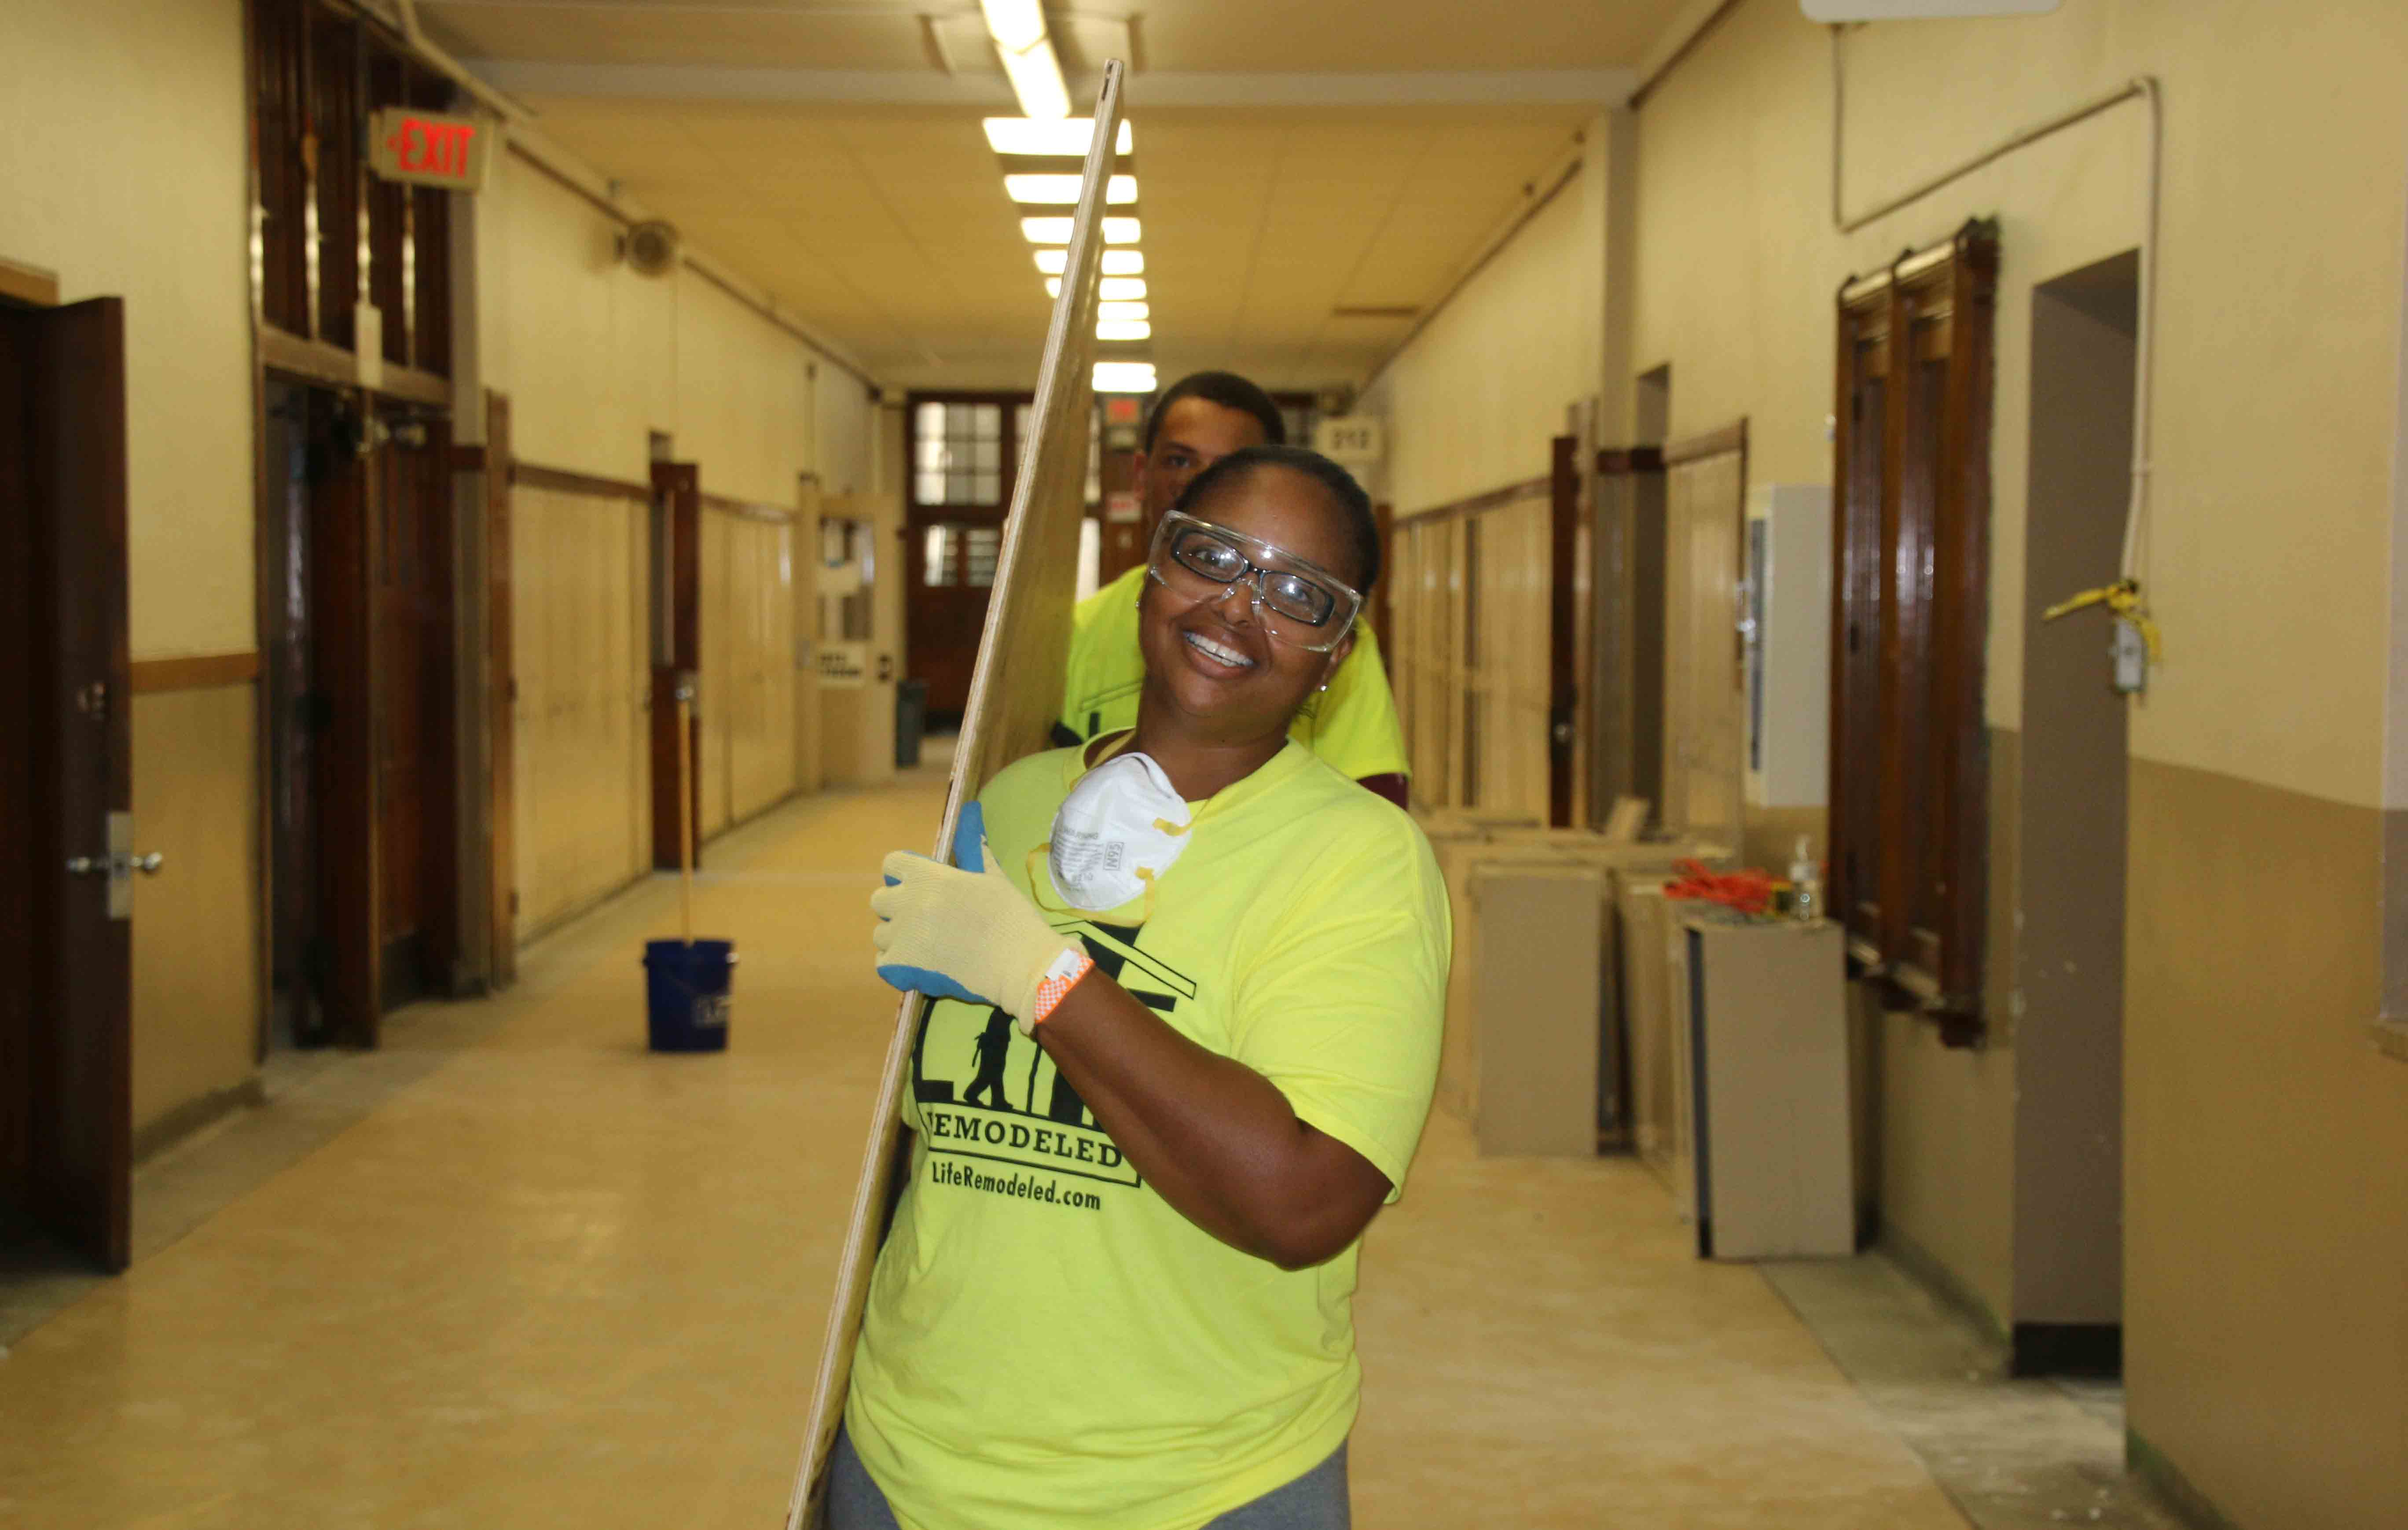 BASF employee helps at Durfee Middle School